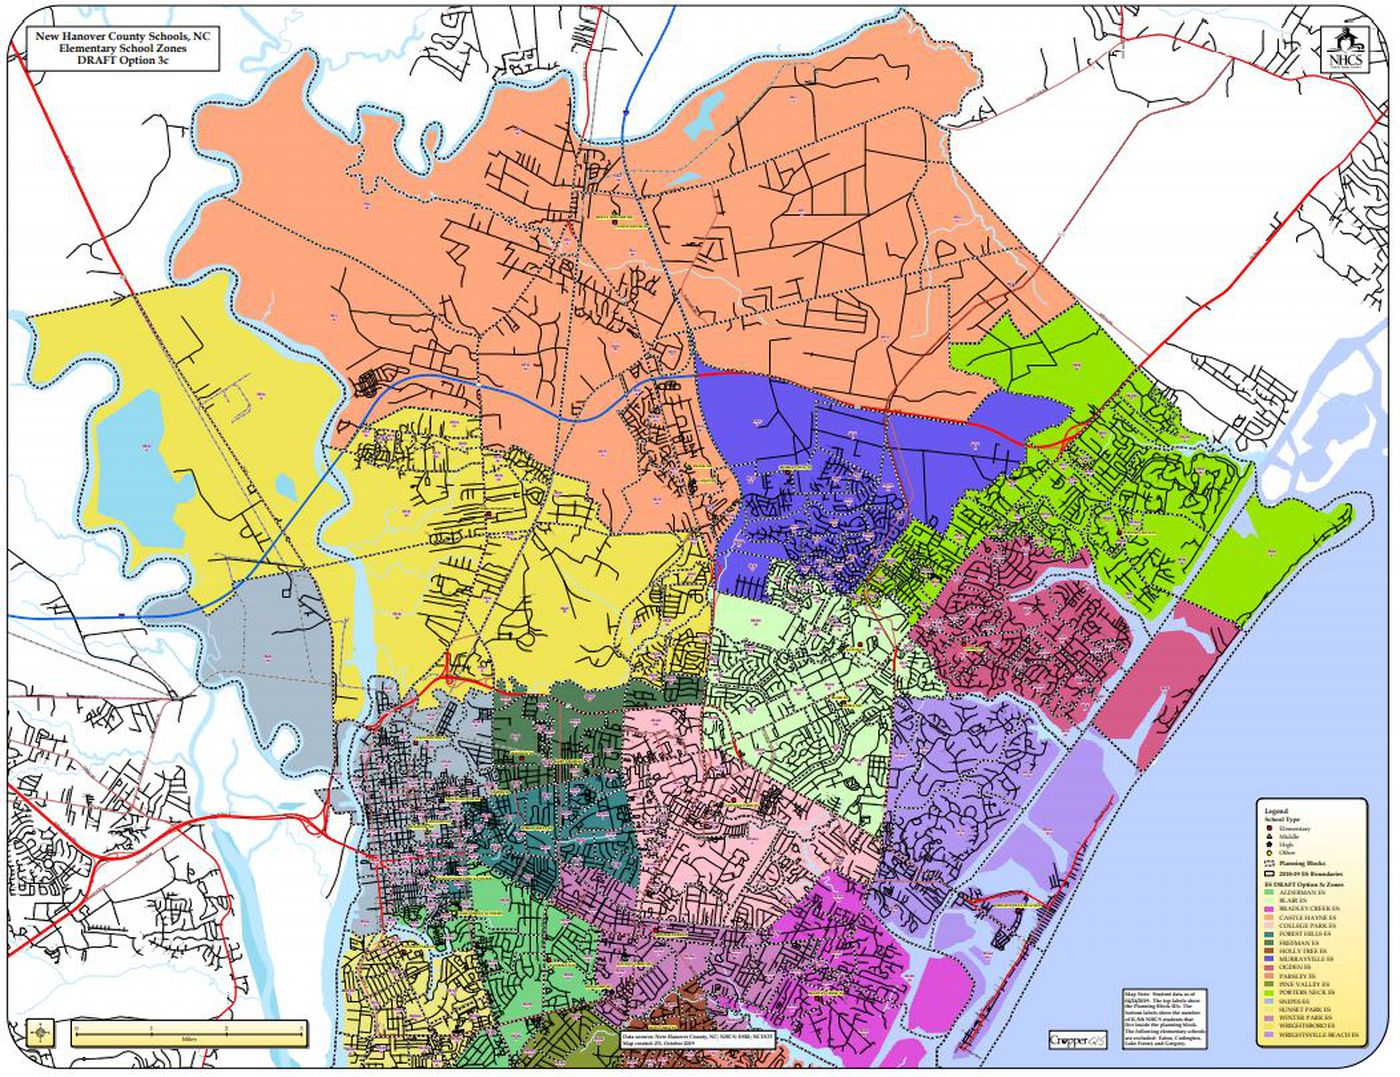 New Hanover County Schools closer to making redistricting